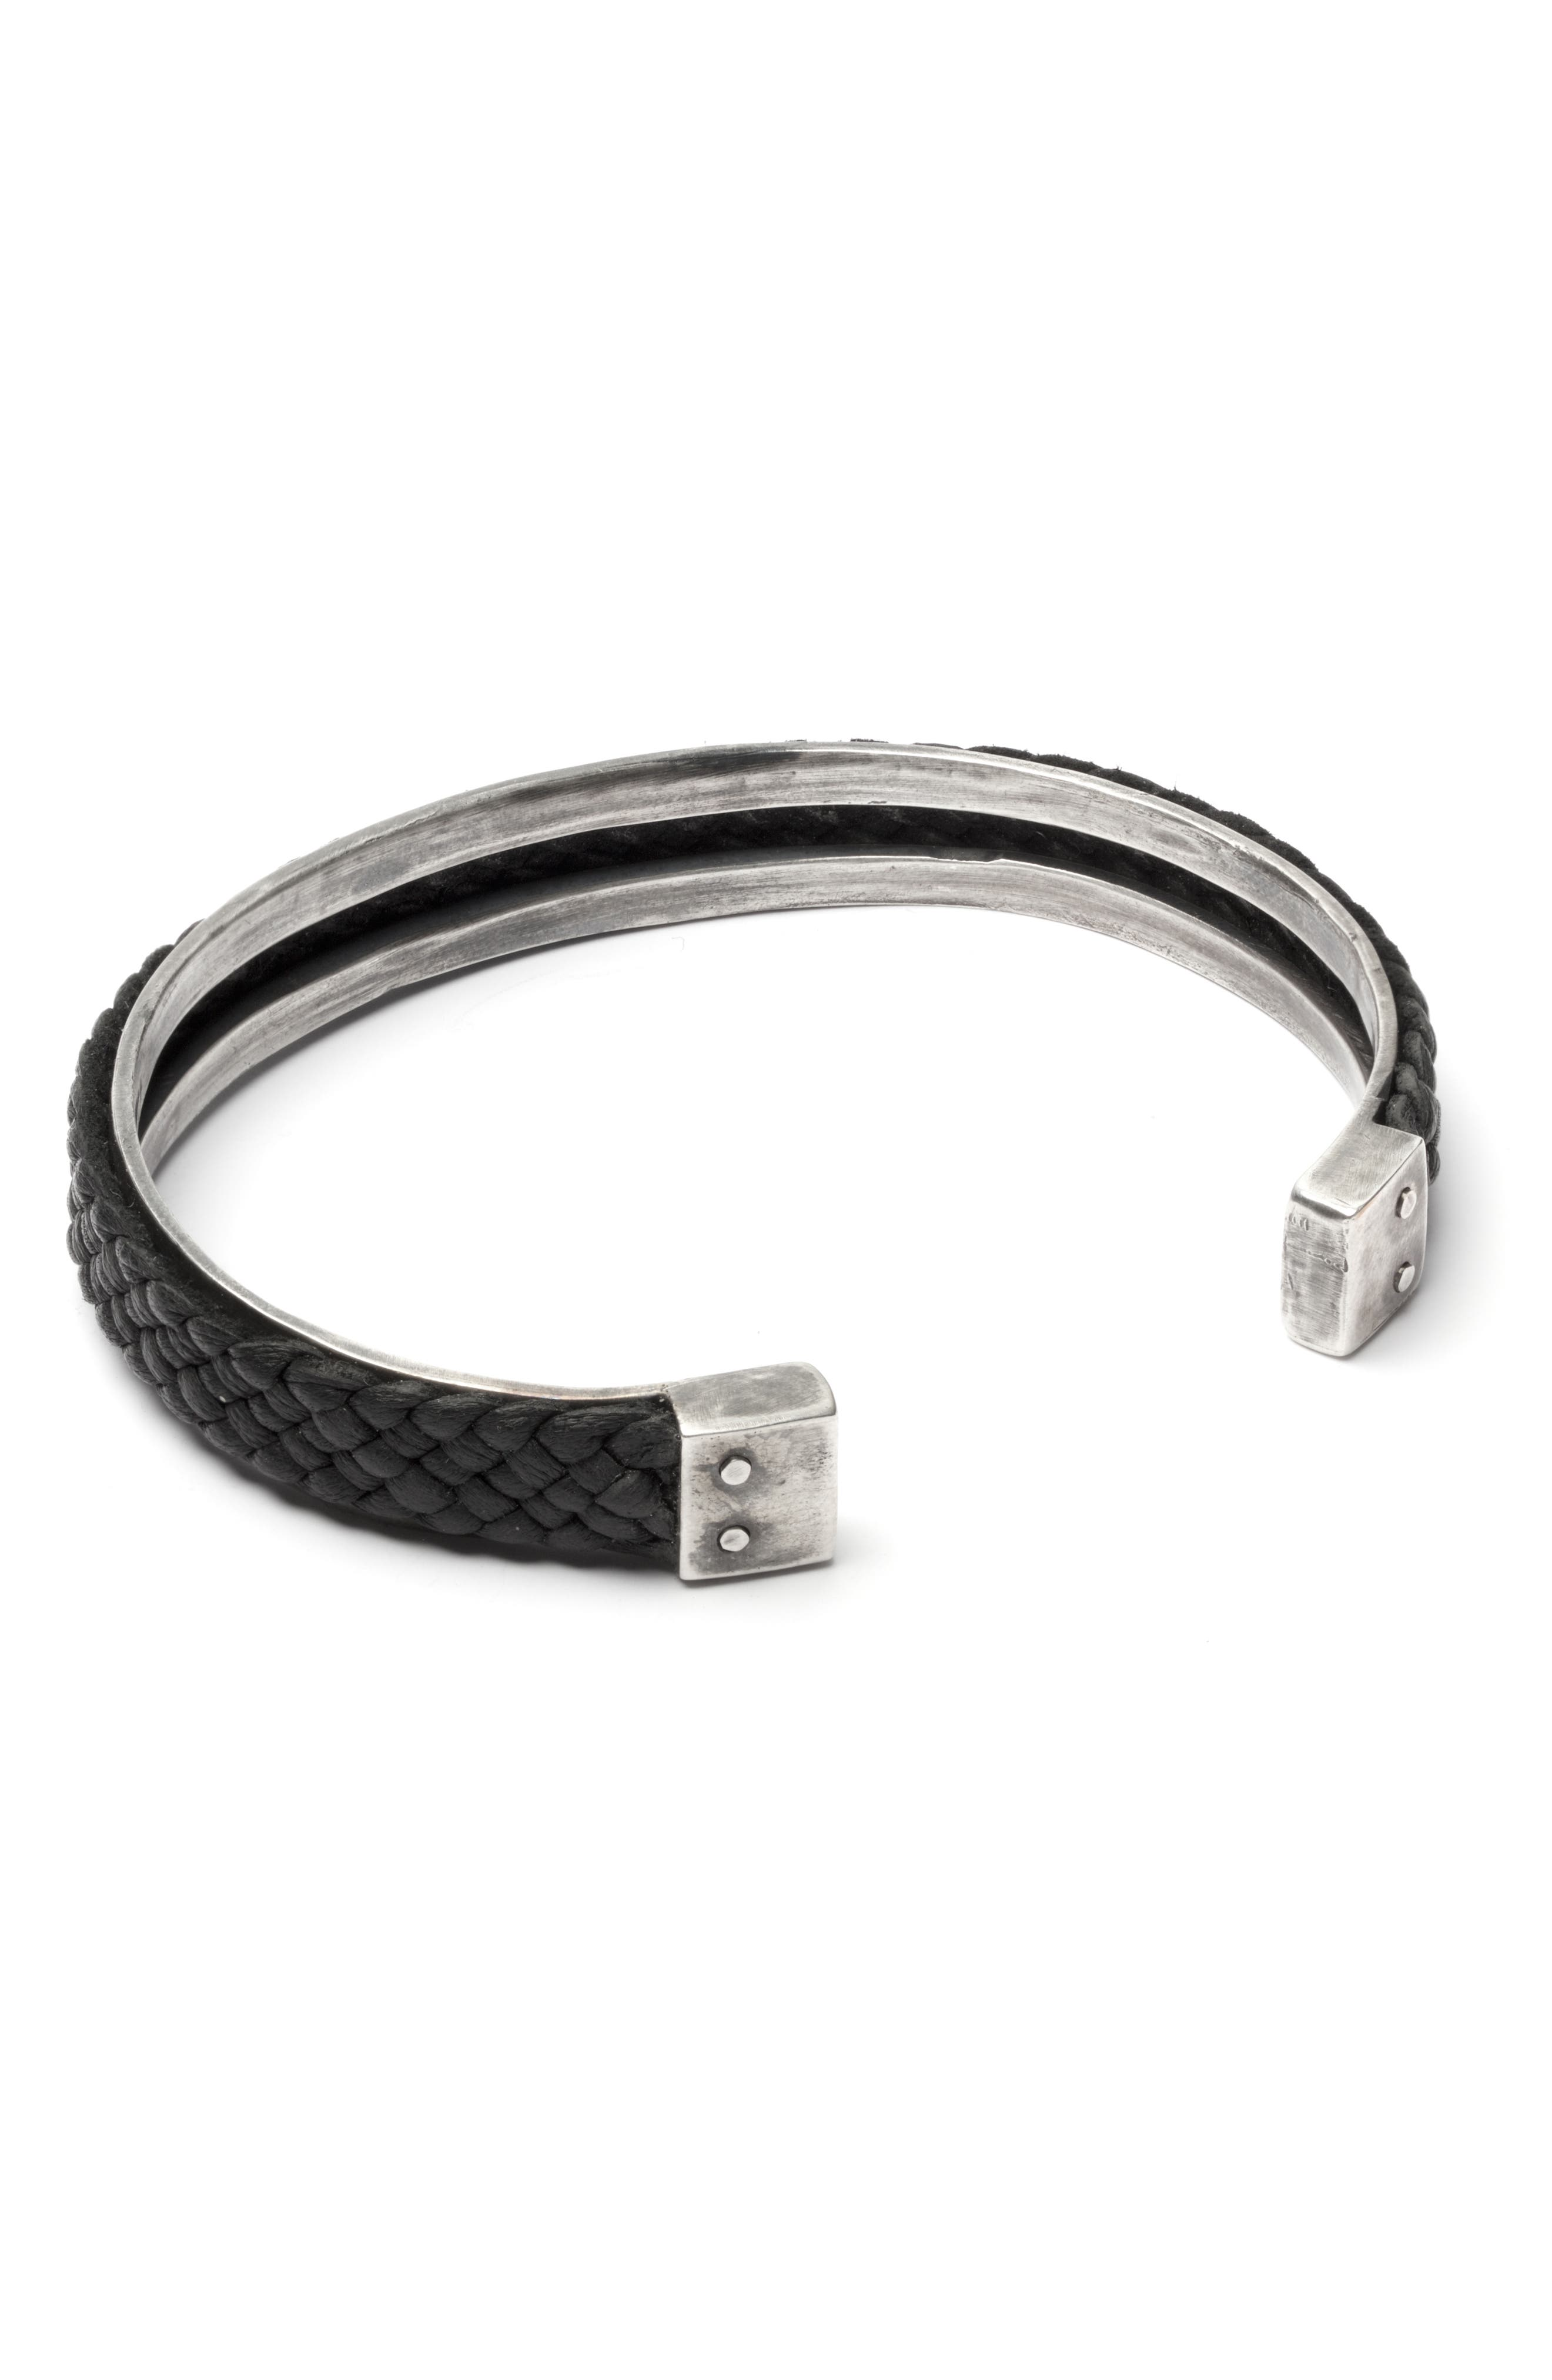 Braided Leather Cuff Bracelet,                             Alternate thumbnail 2, color,                             BLACK/SILVER